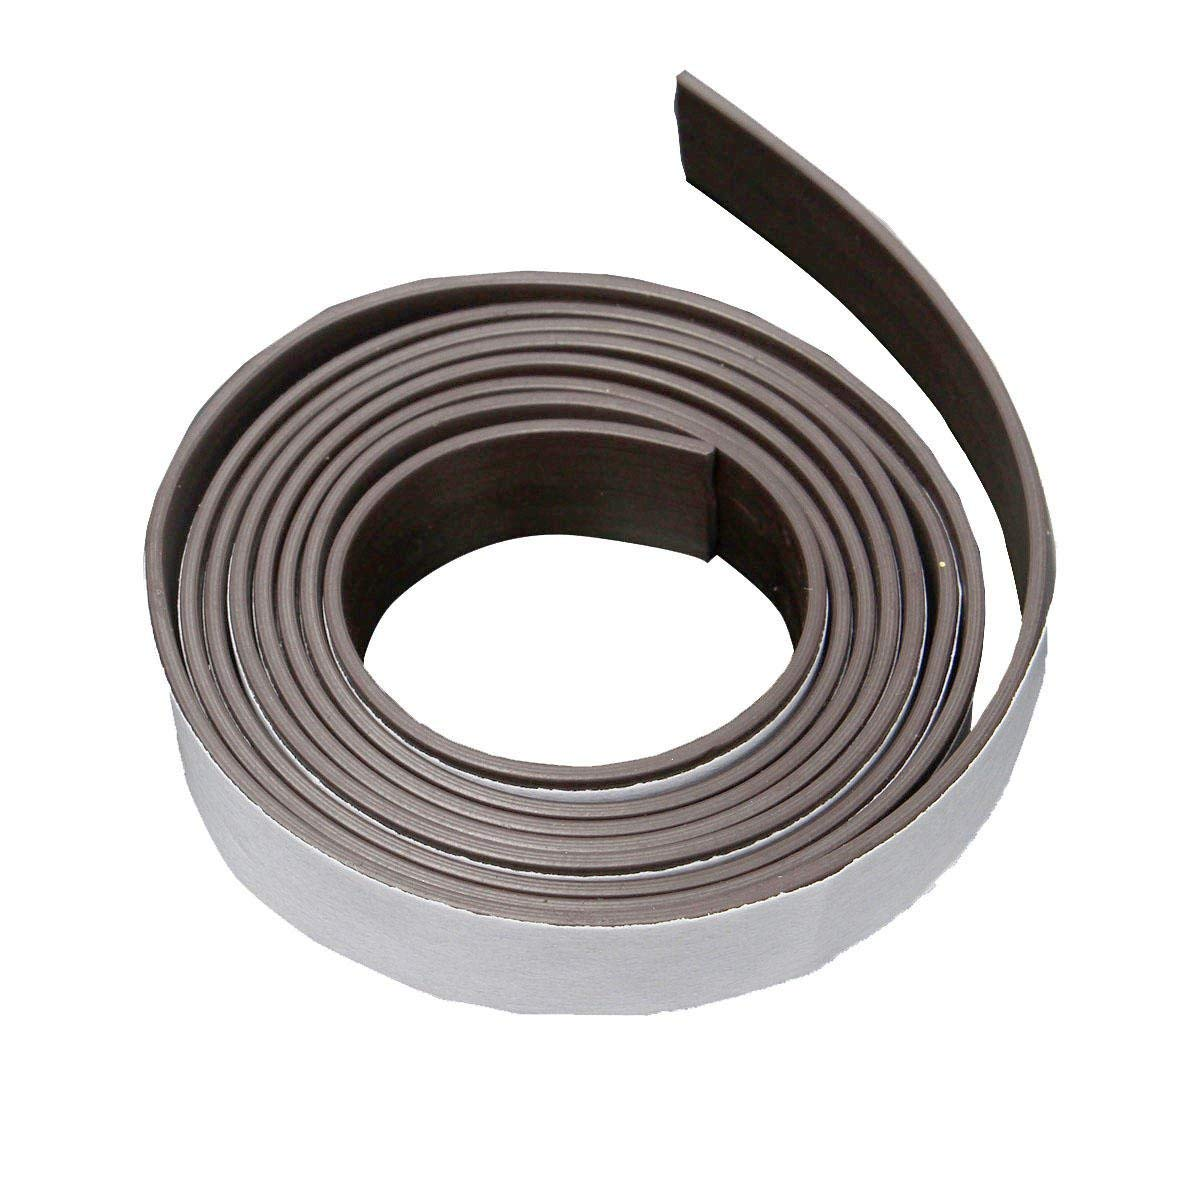 Get Quotations 1m Self Adhesive Strip Magnet Tape Strong 10x1 5mm Mechanical Parts